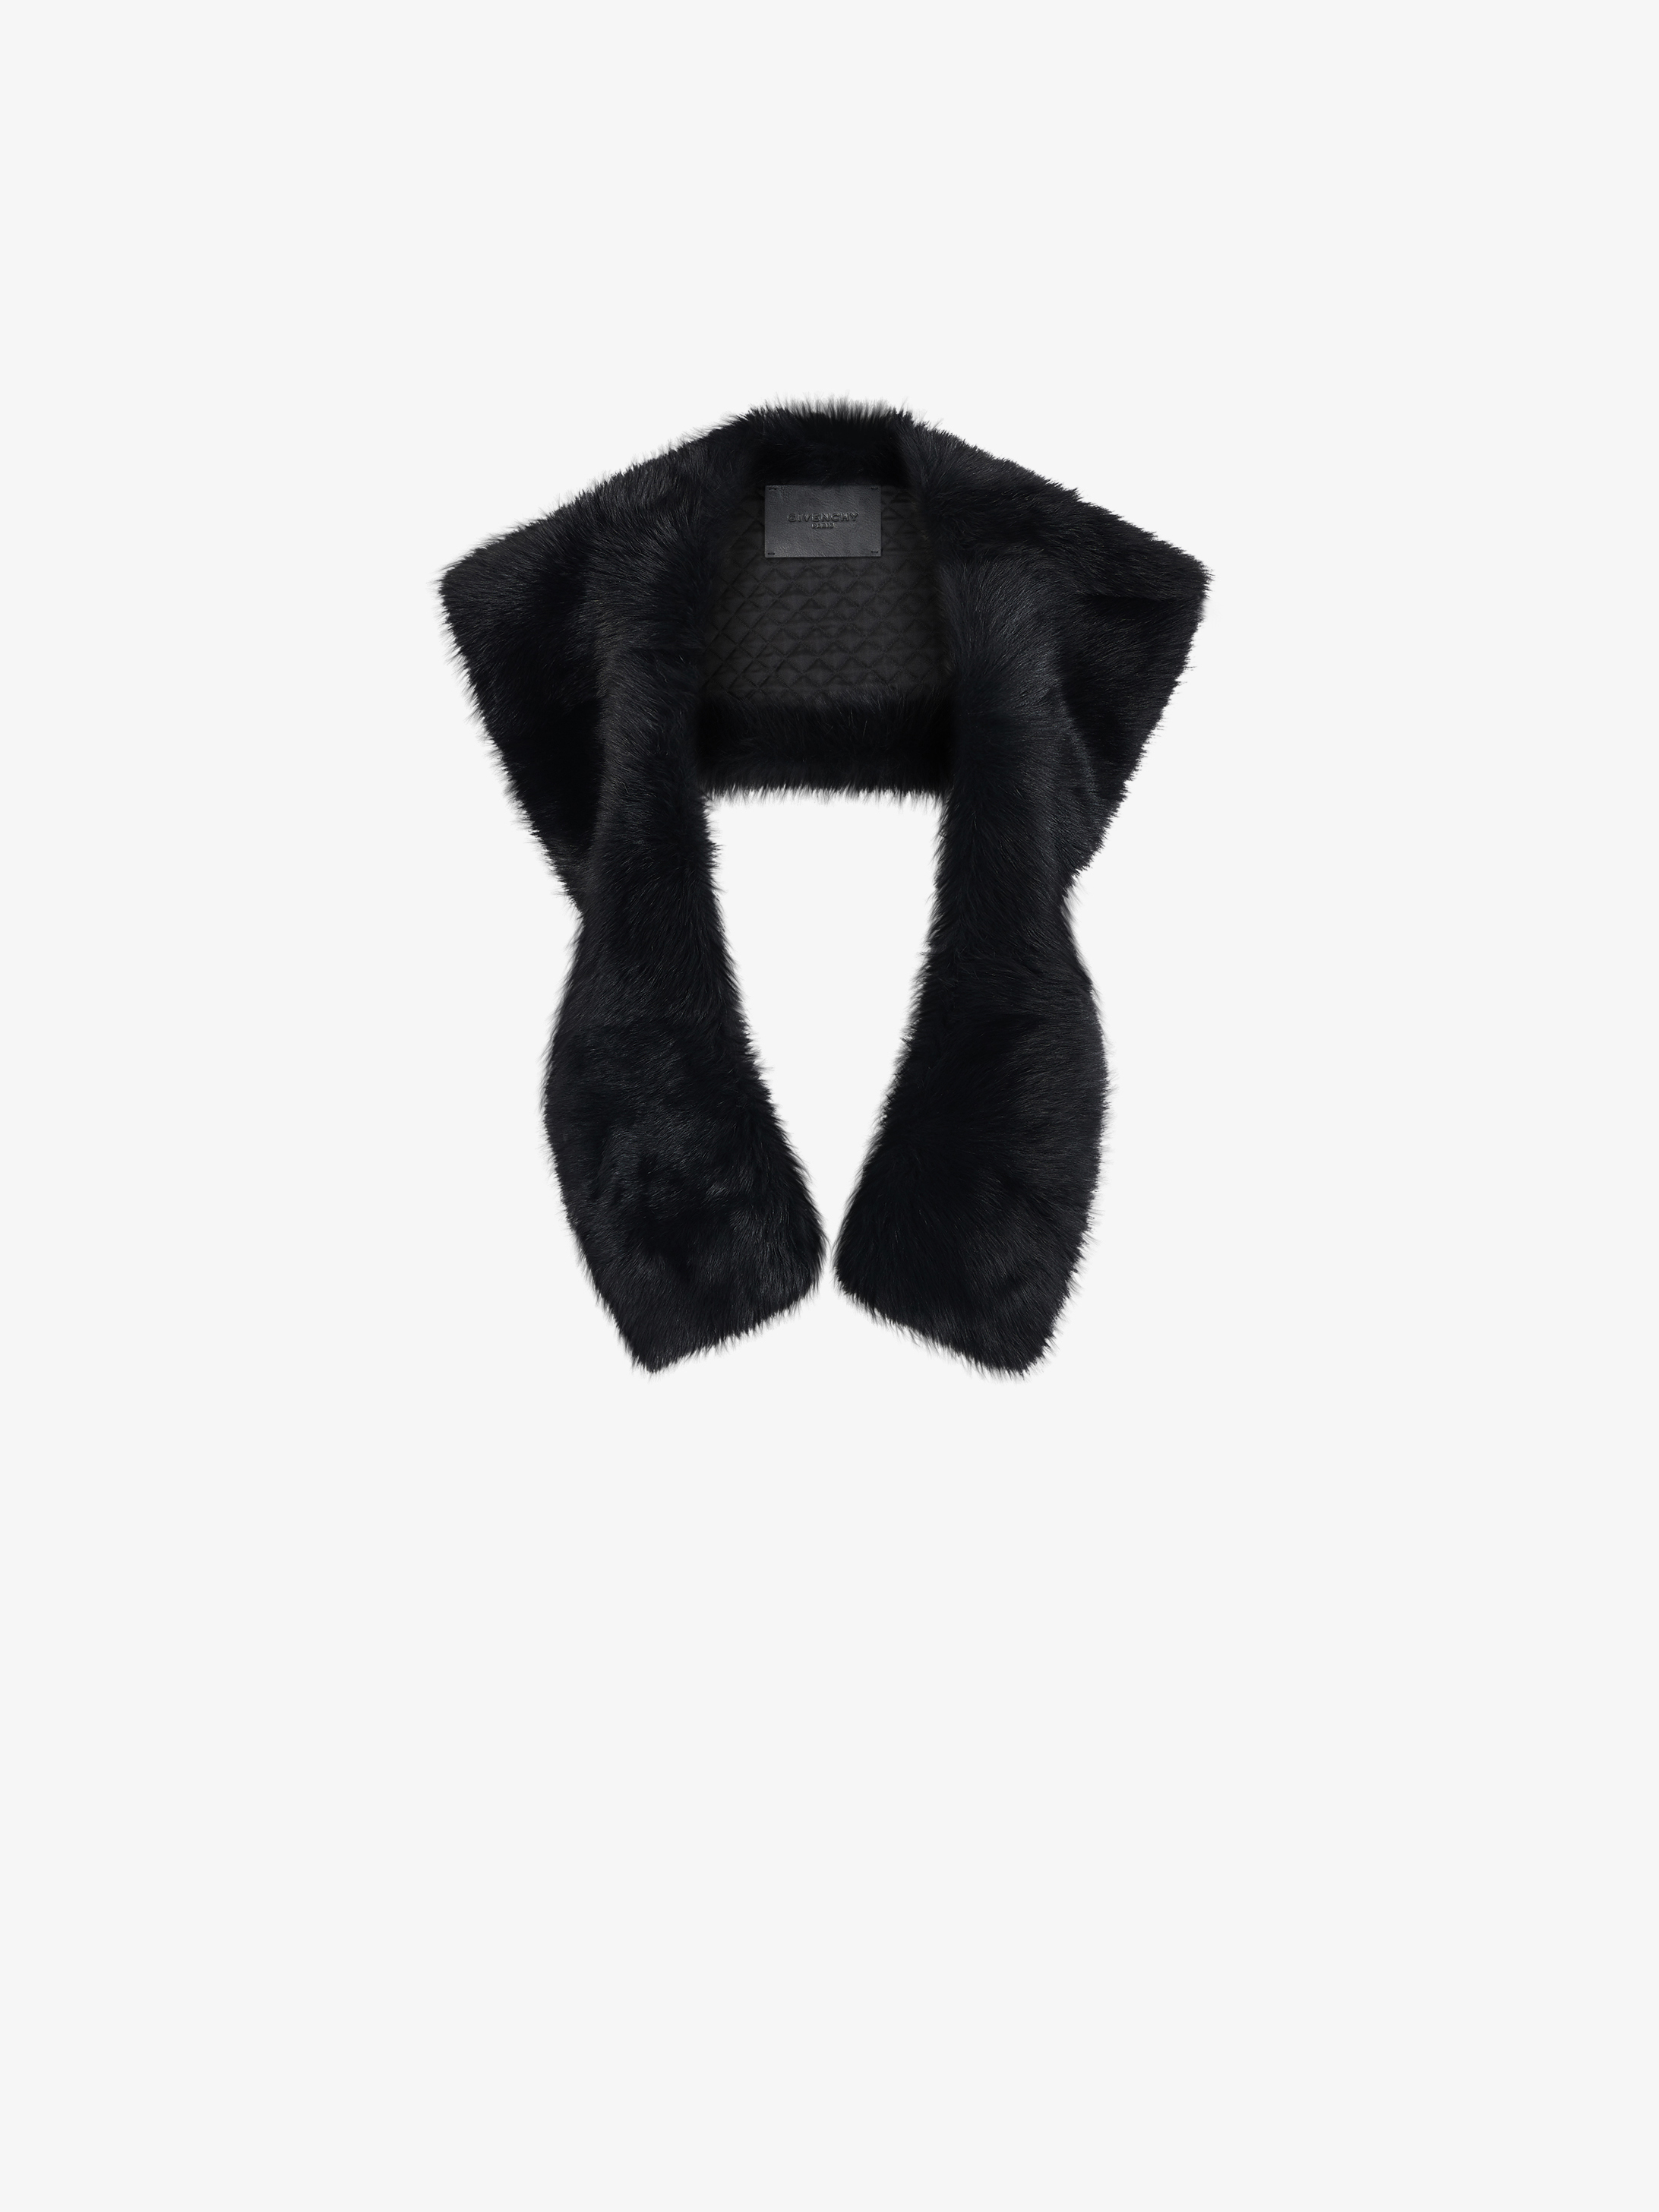 GIVENCHY fur stole